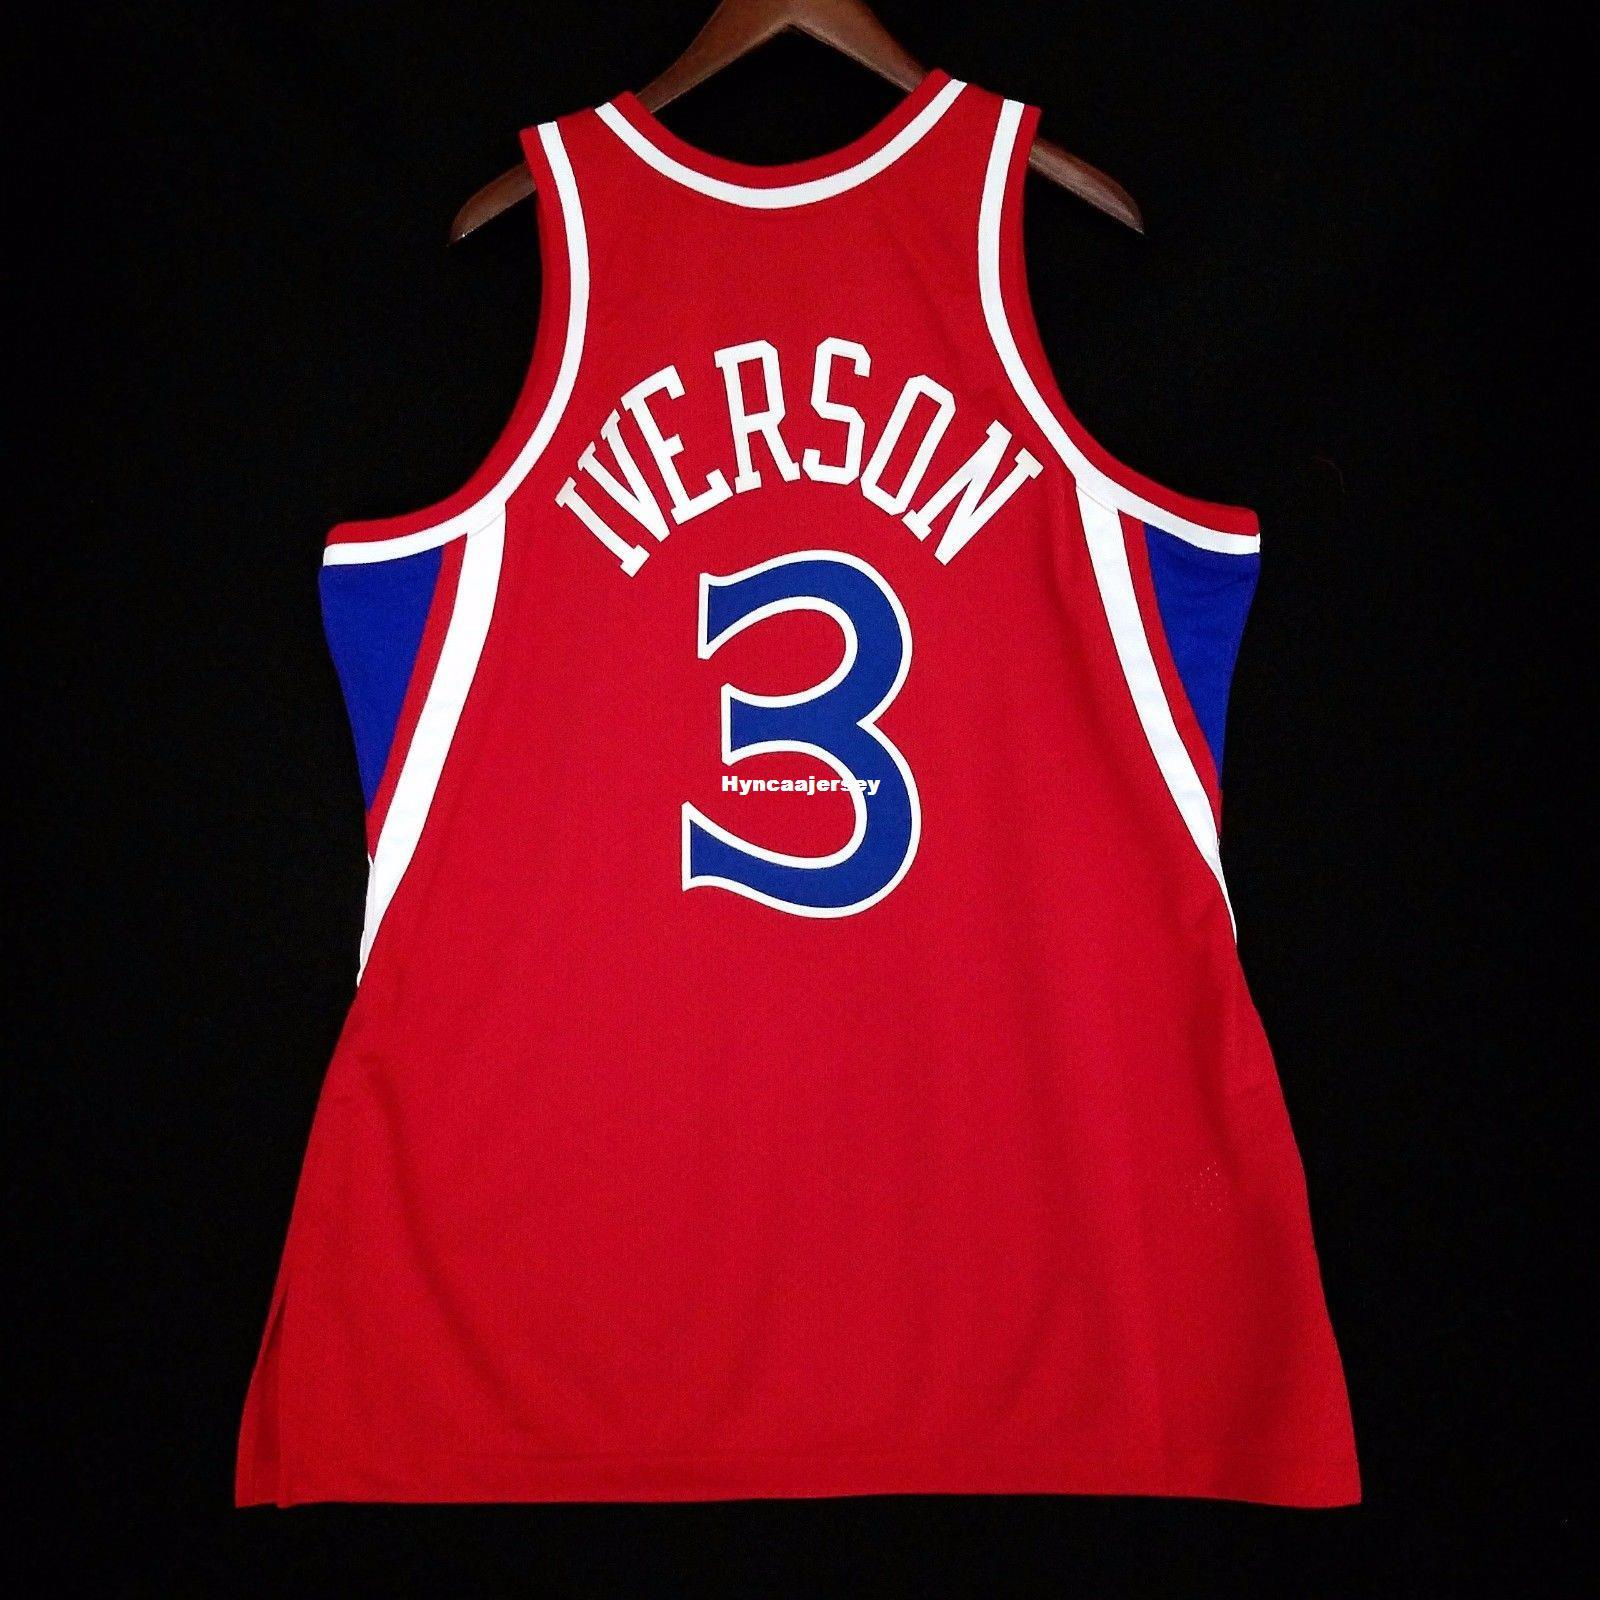 on sale e4f5b 112d5 100% Stitched Mitchell & Ness Allen Iverson #3 wholesale Red Jersey Mens  Vest Size XS-6XL Stitched basketball Jerseys Ncaa